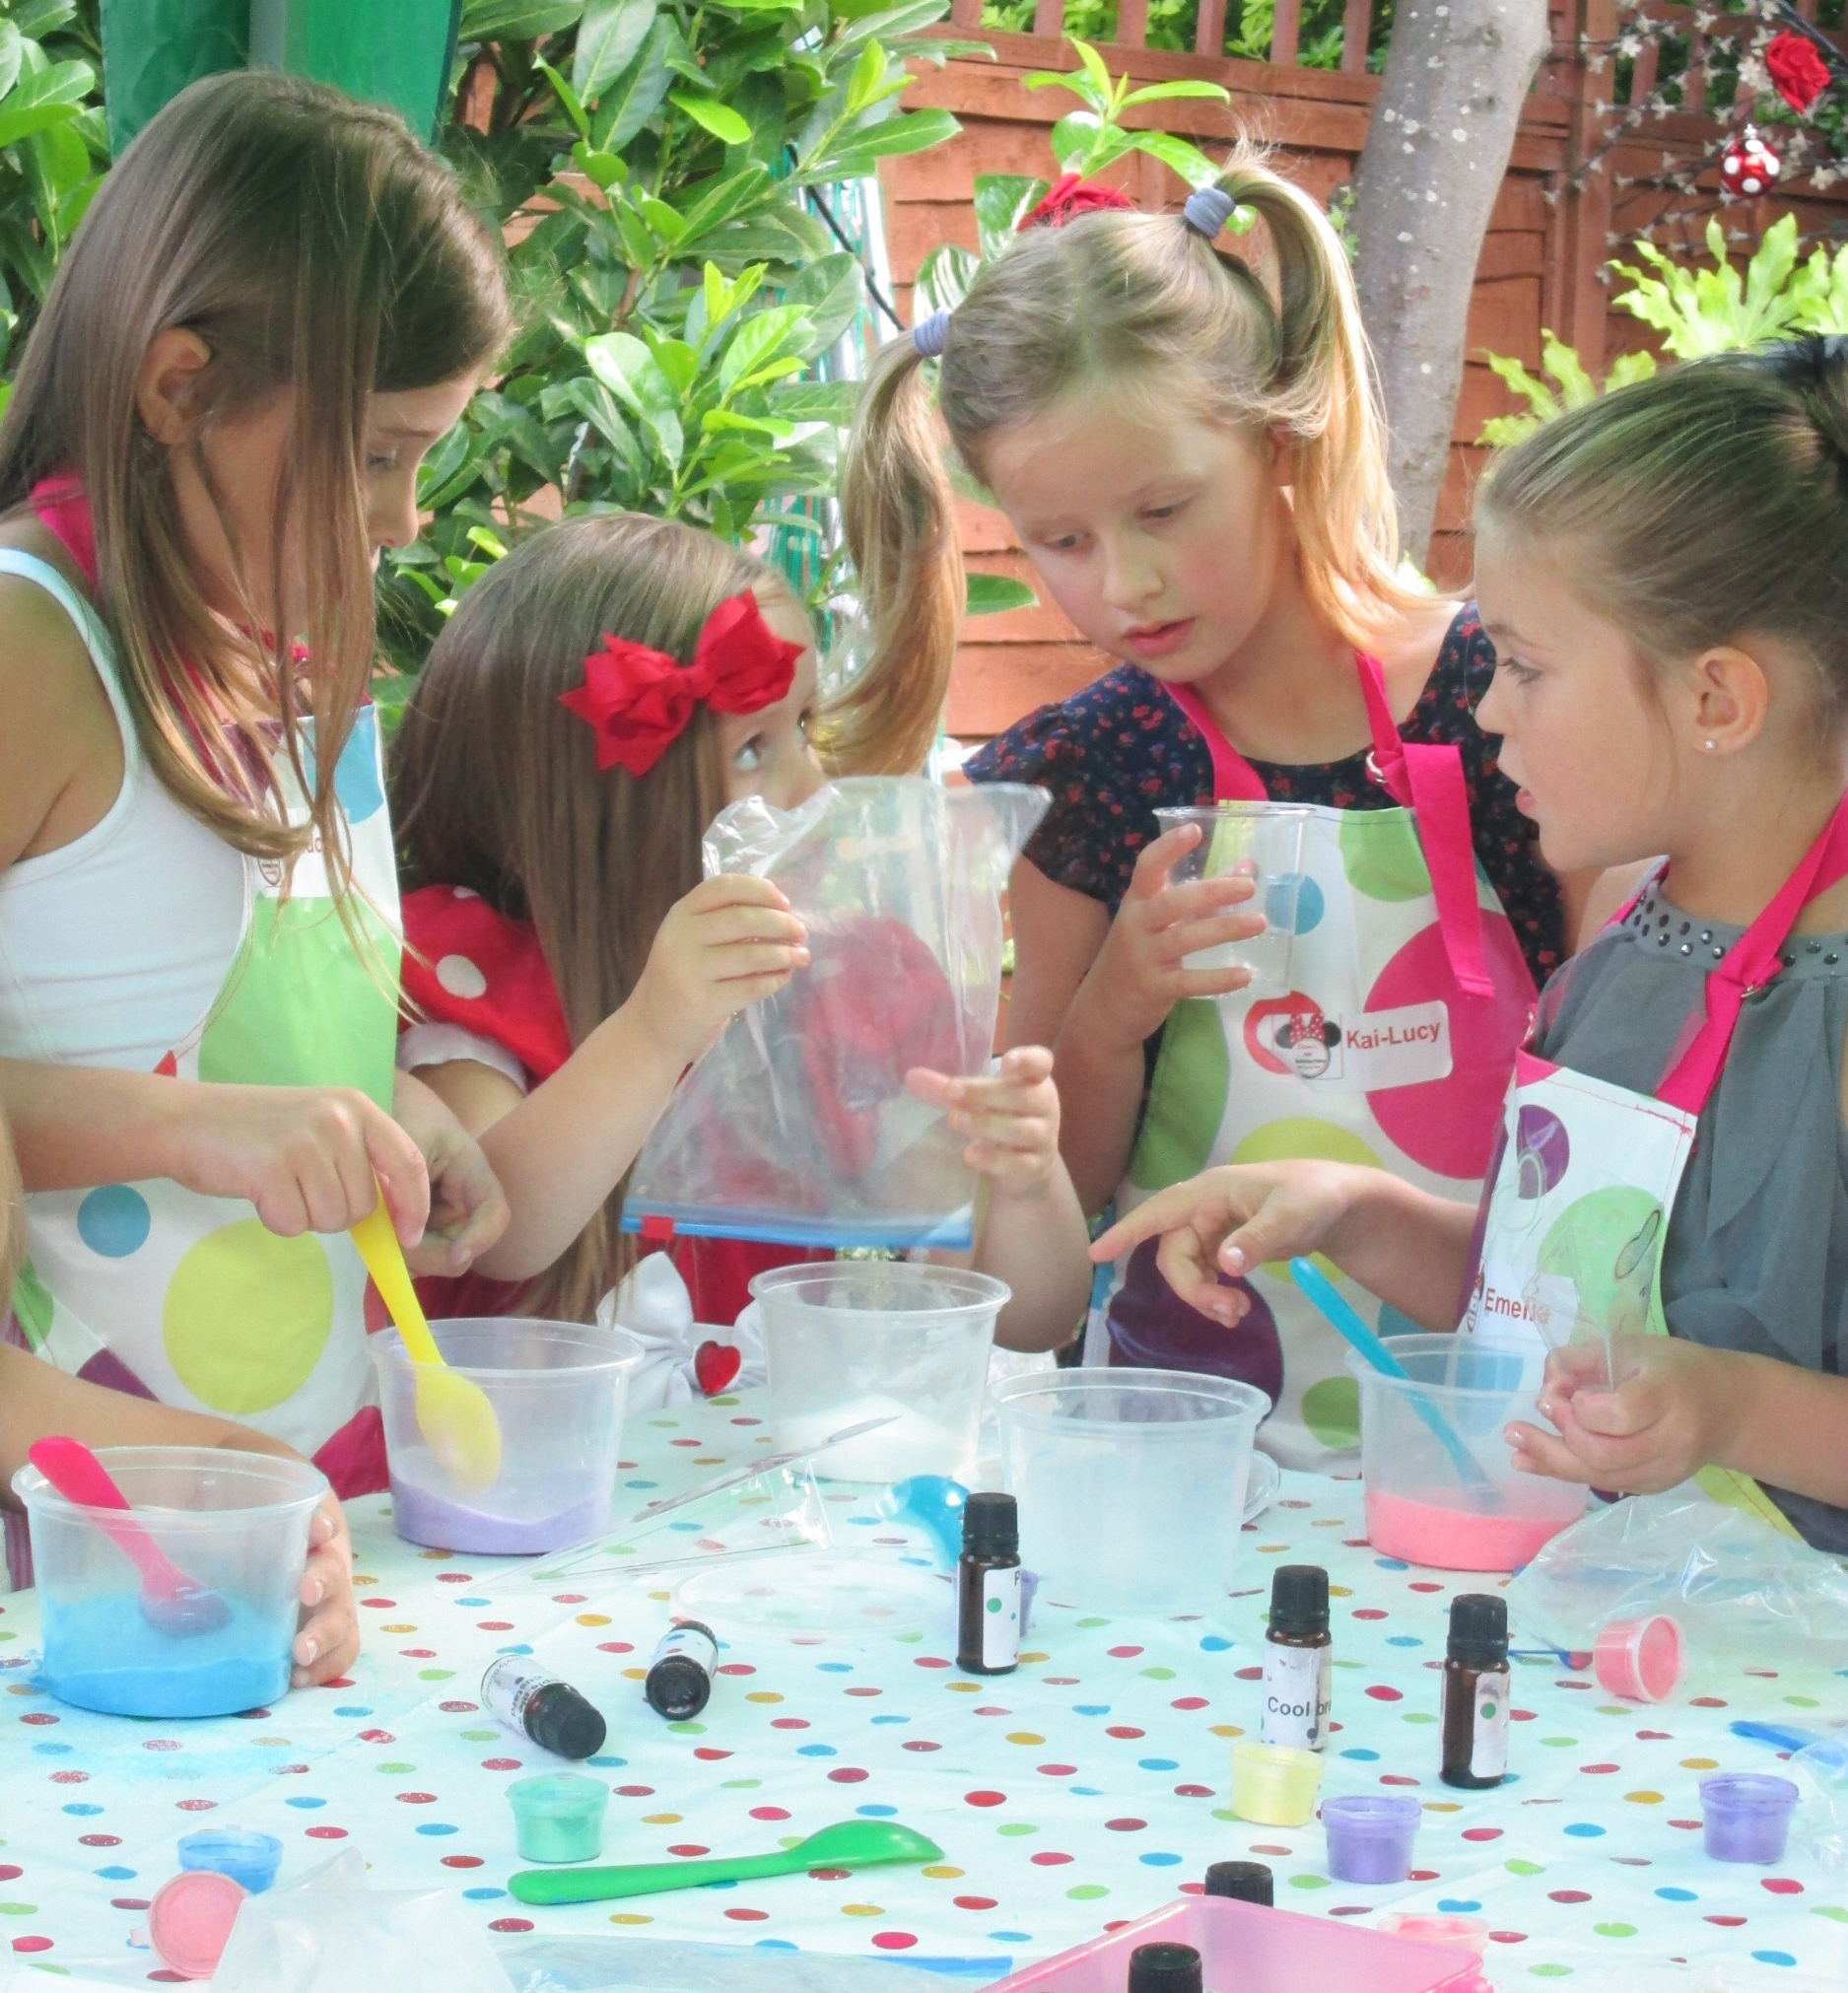 Copy of Children making spa products kids soap making parties